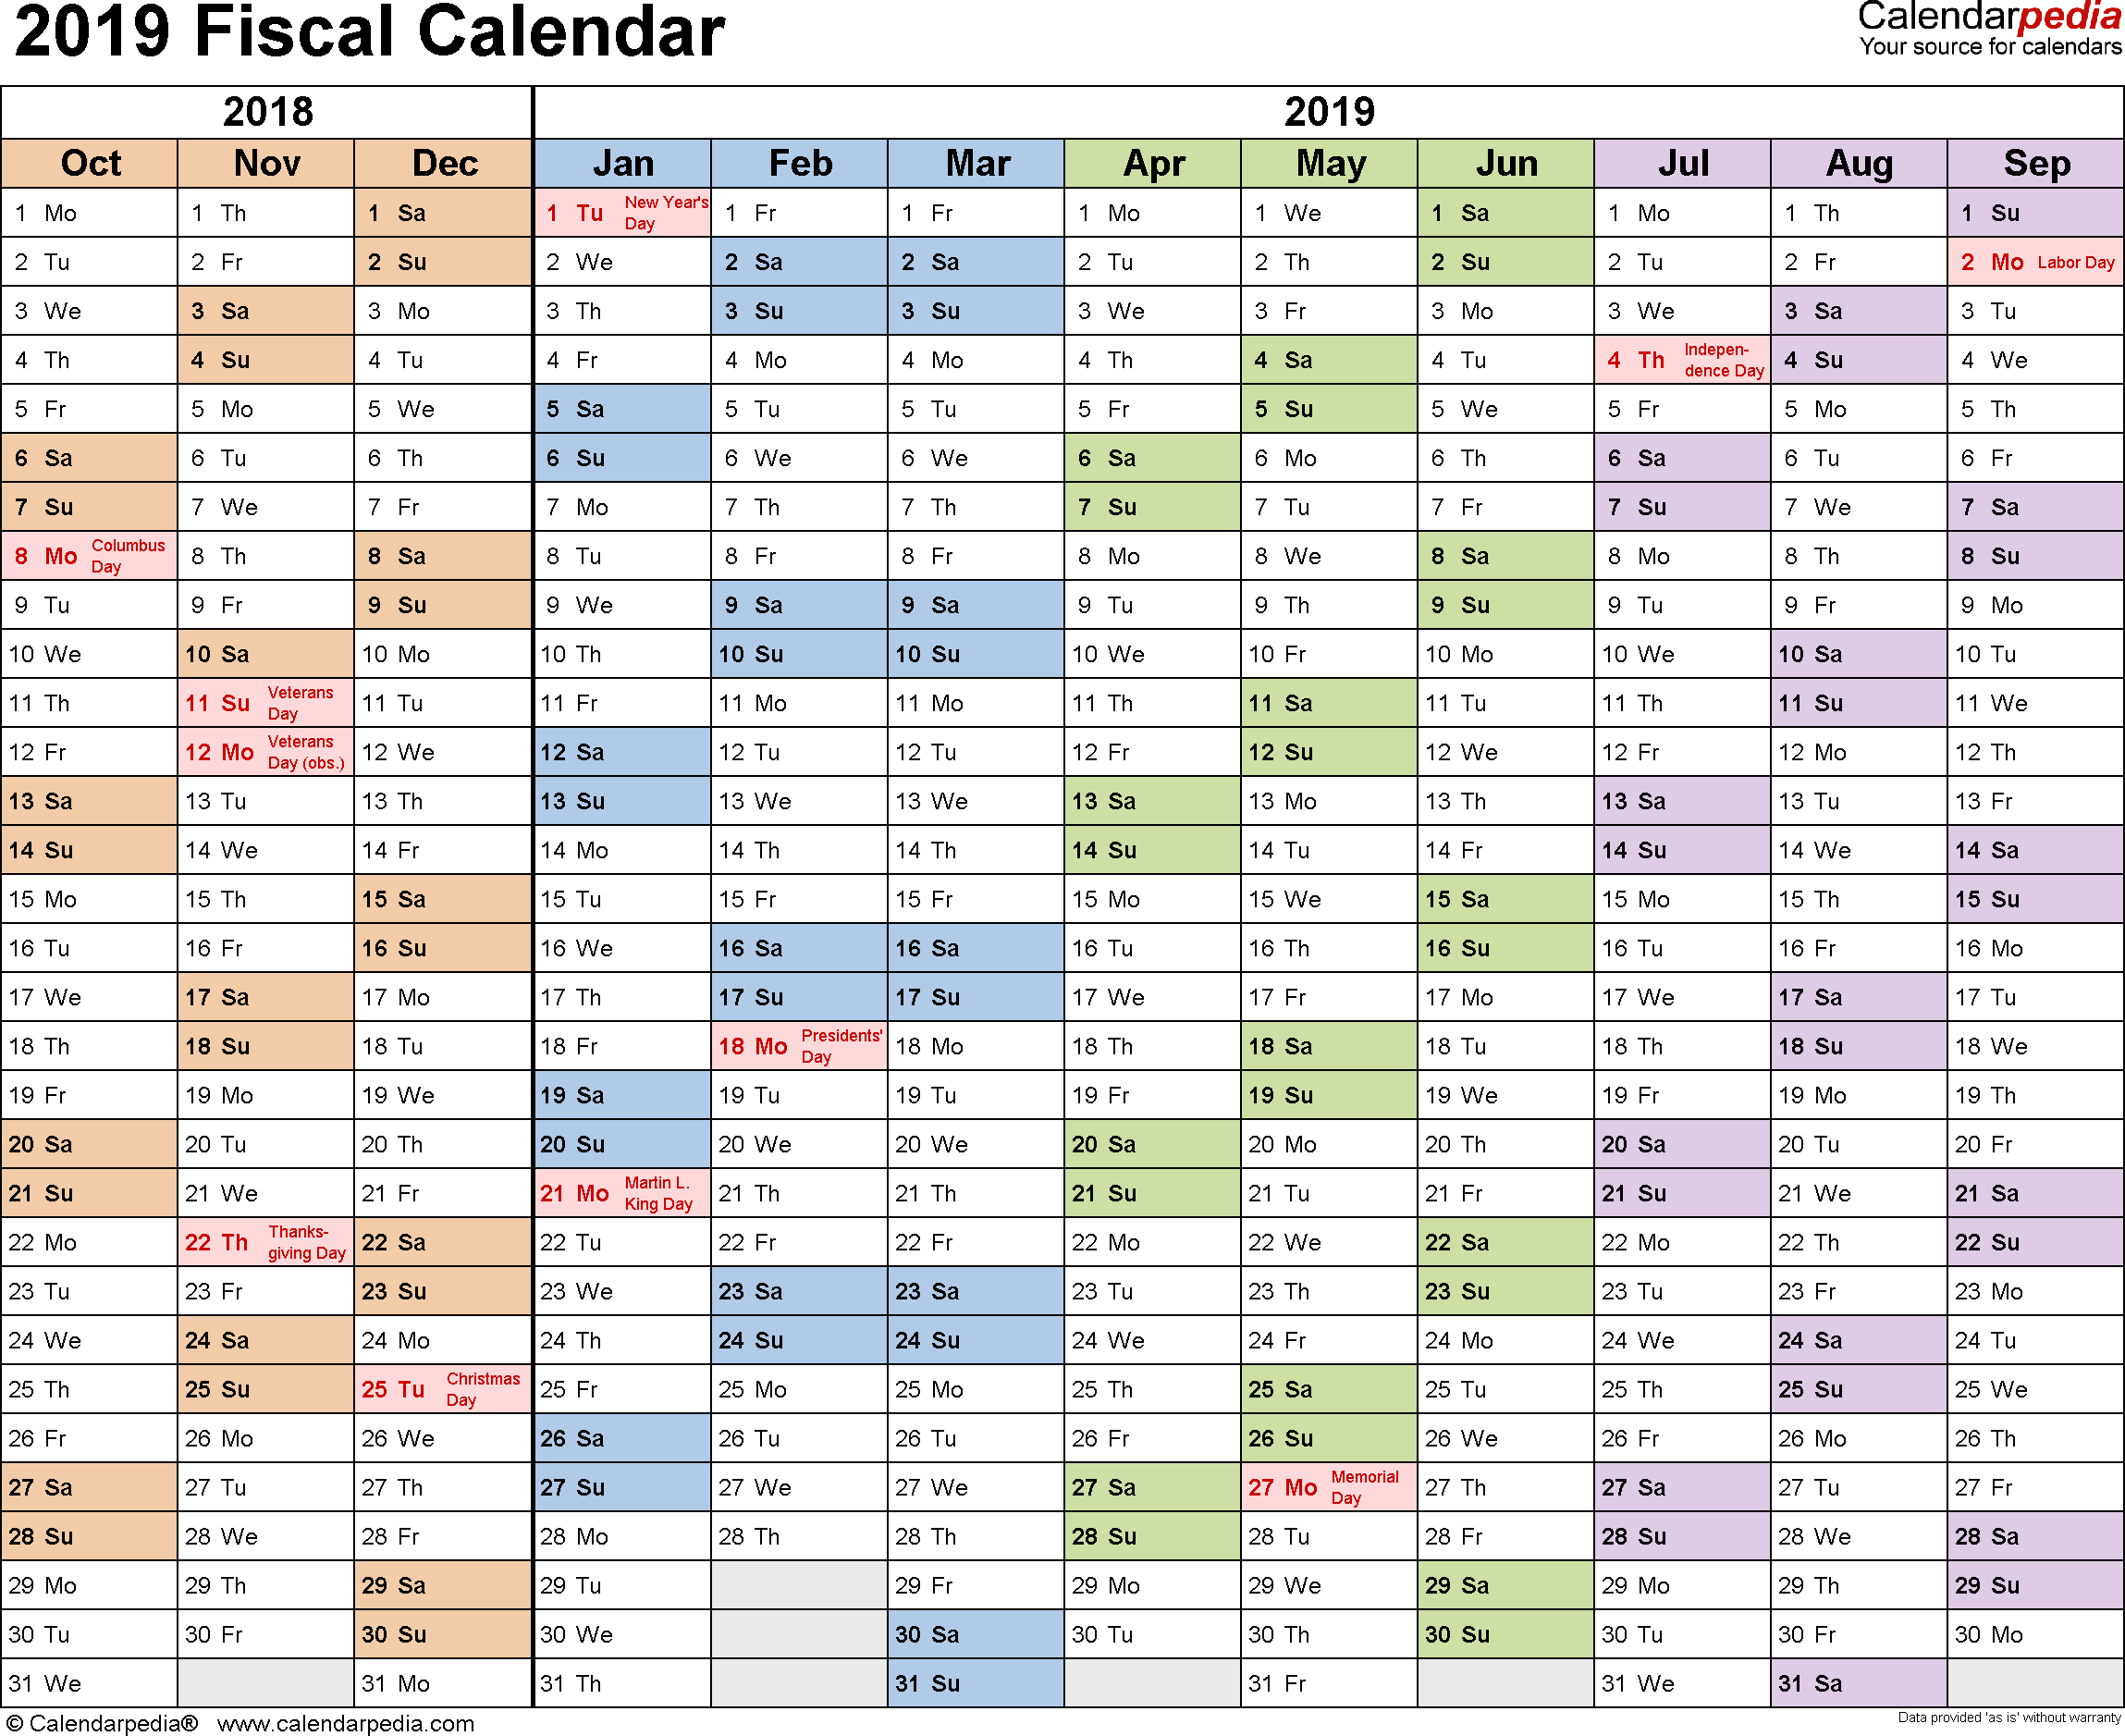 template 1 fiscal year calendar 2019 for pdf landscape orientation months horizontally